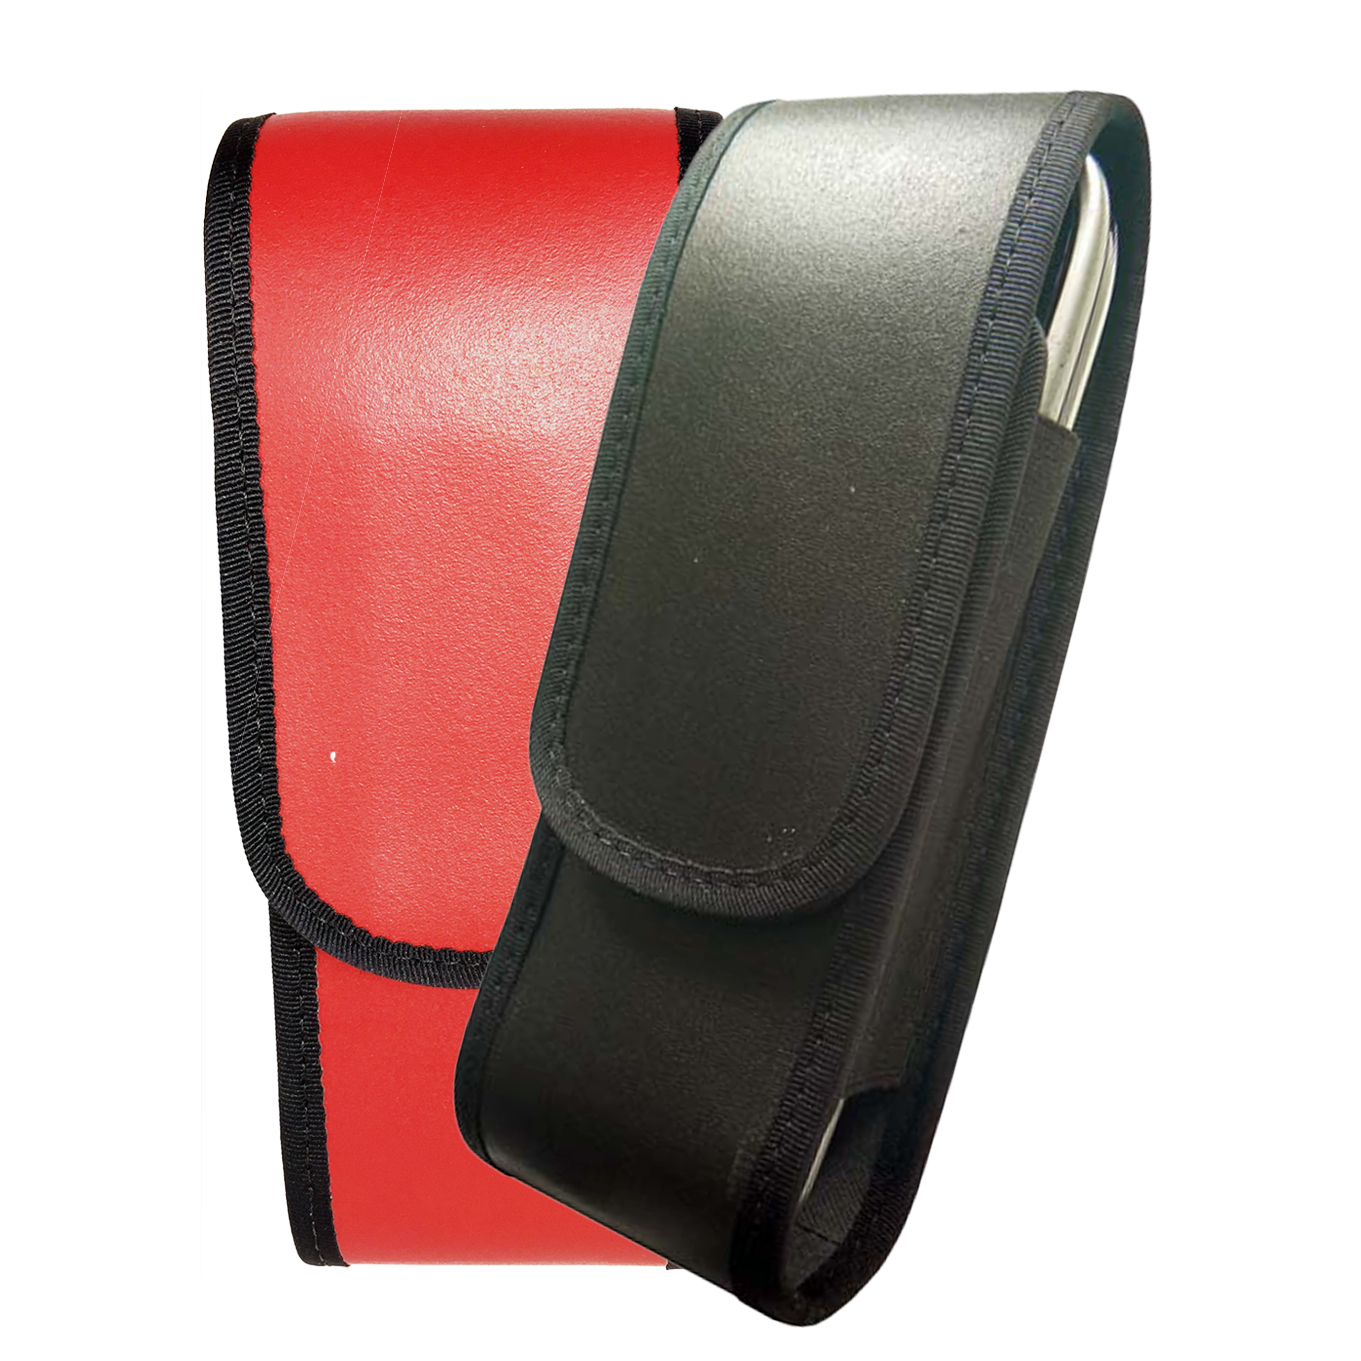 Leather radio case for DECT Phone Black & Red